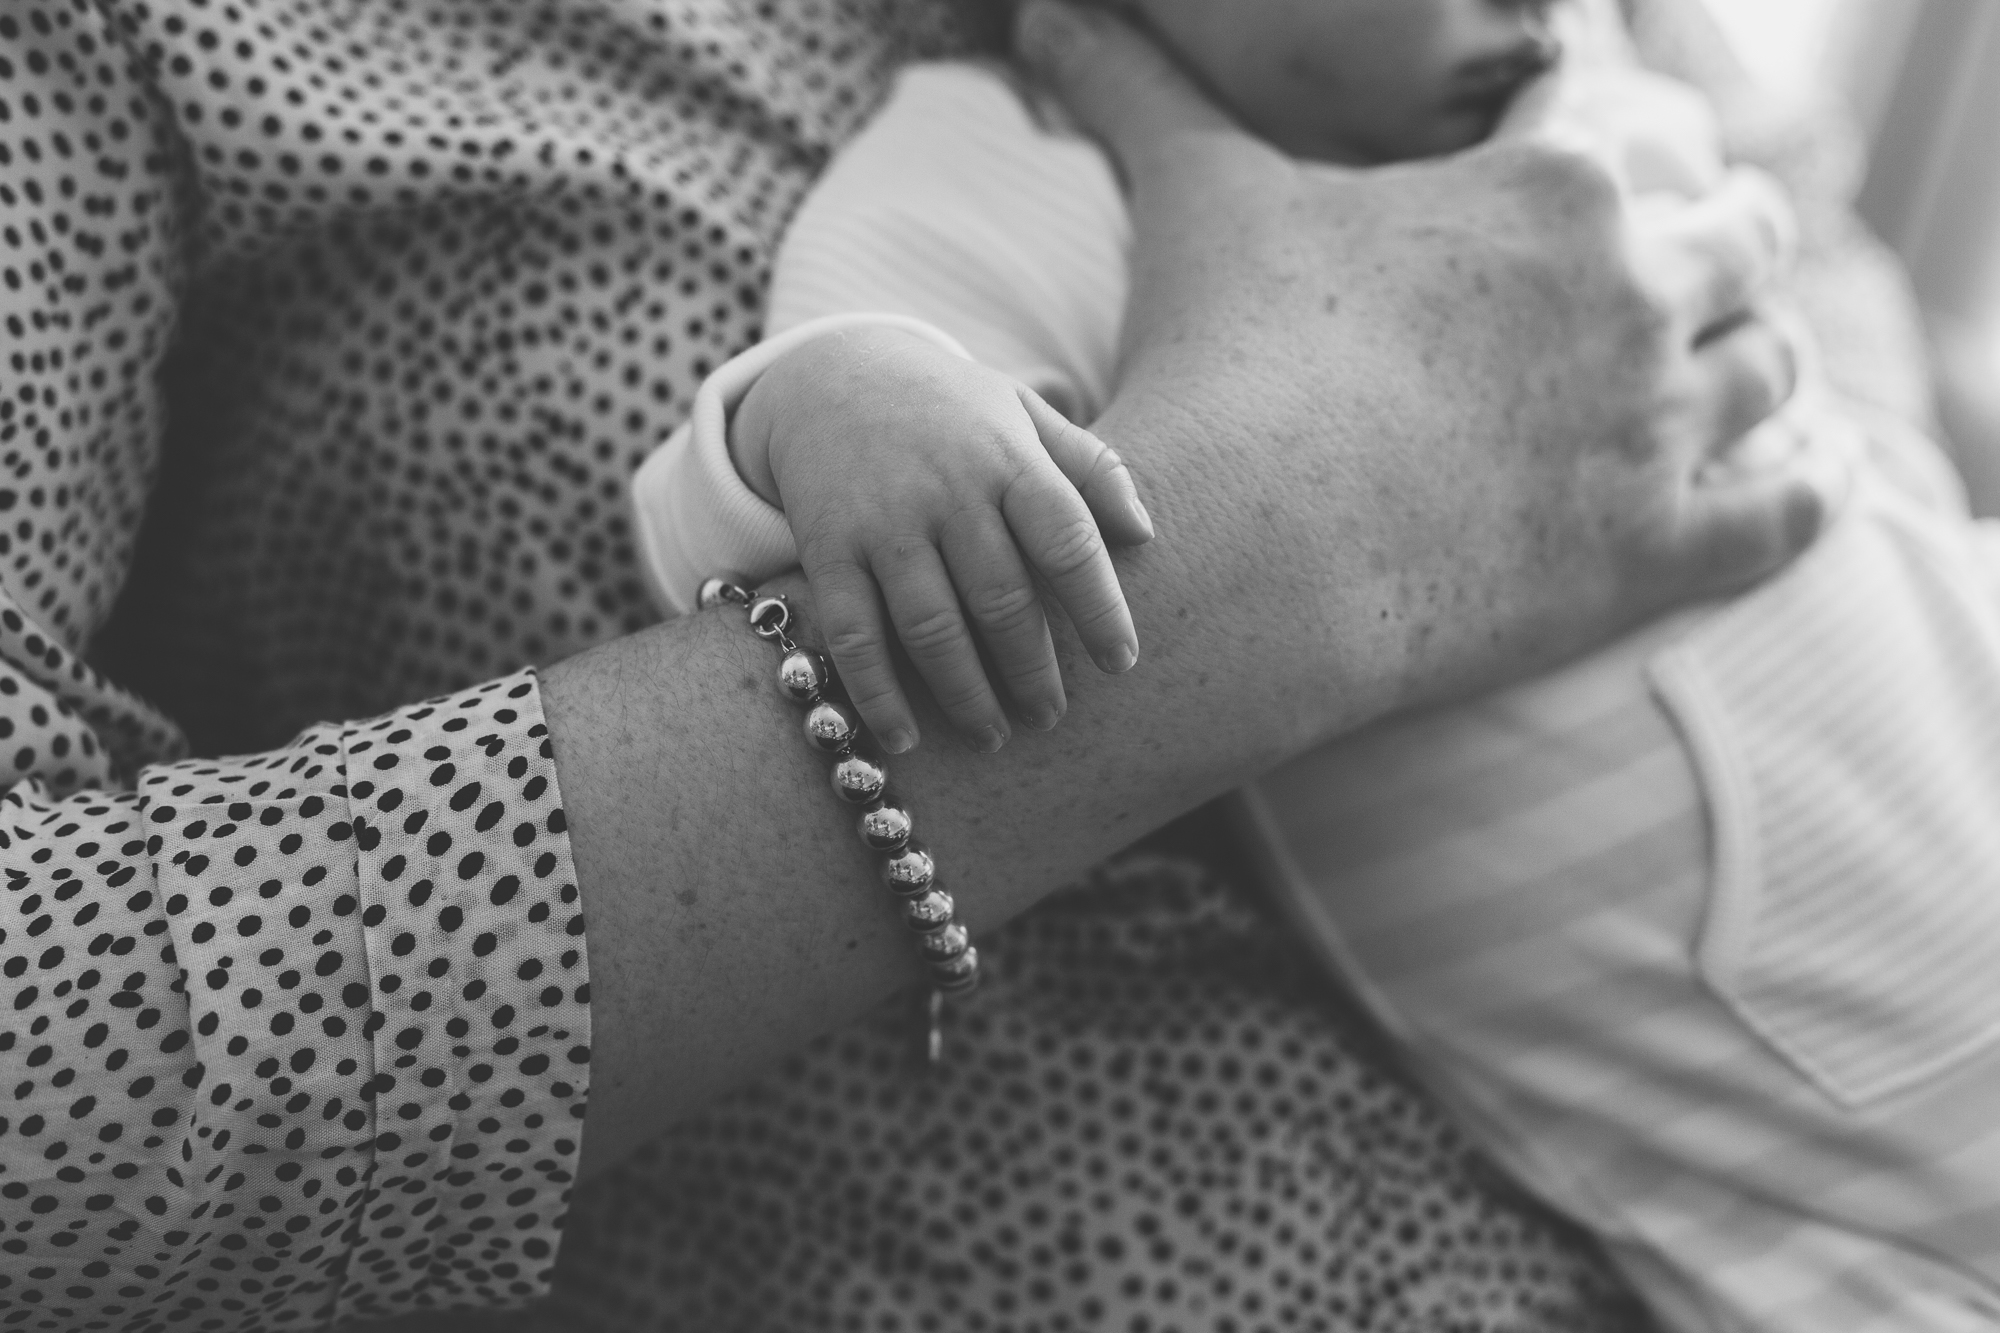 aberdeennewbornbabyphotographer (13 of 17).jpg